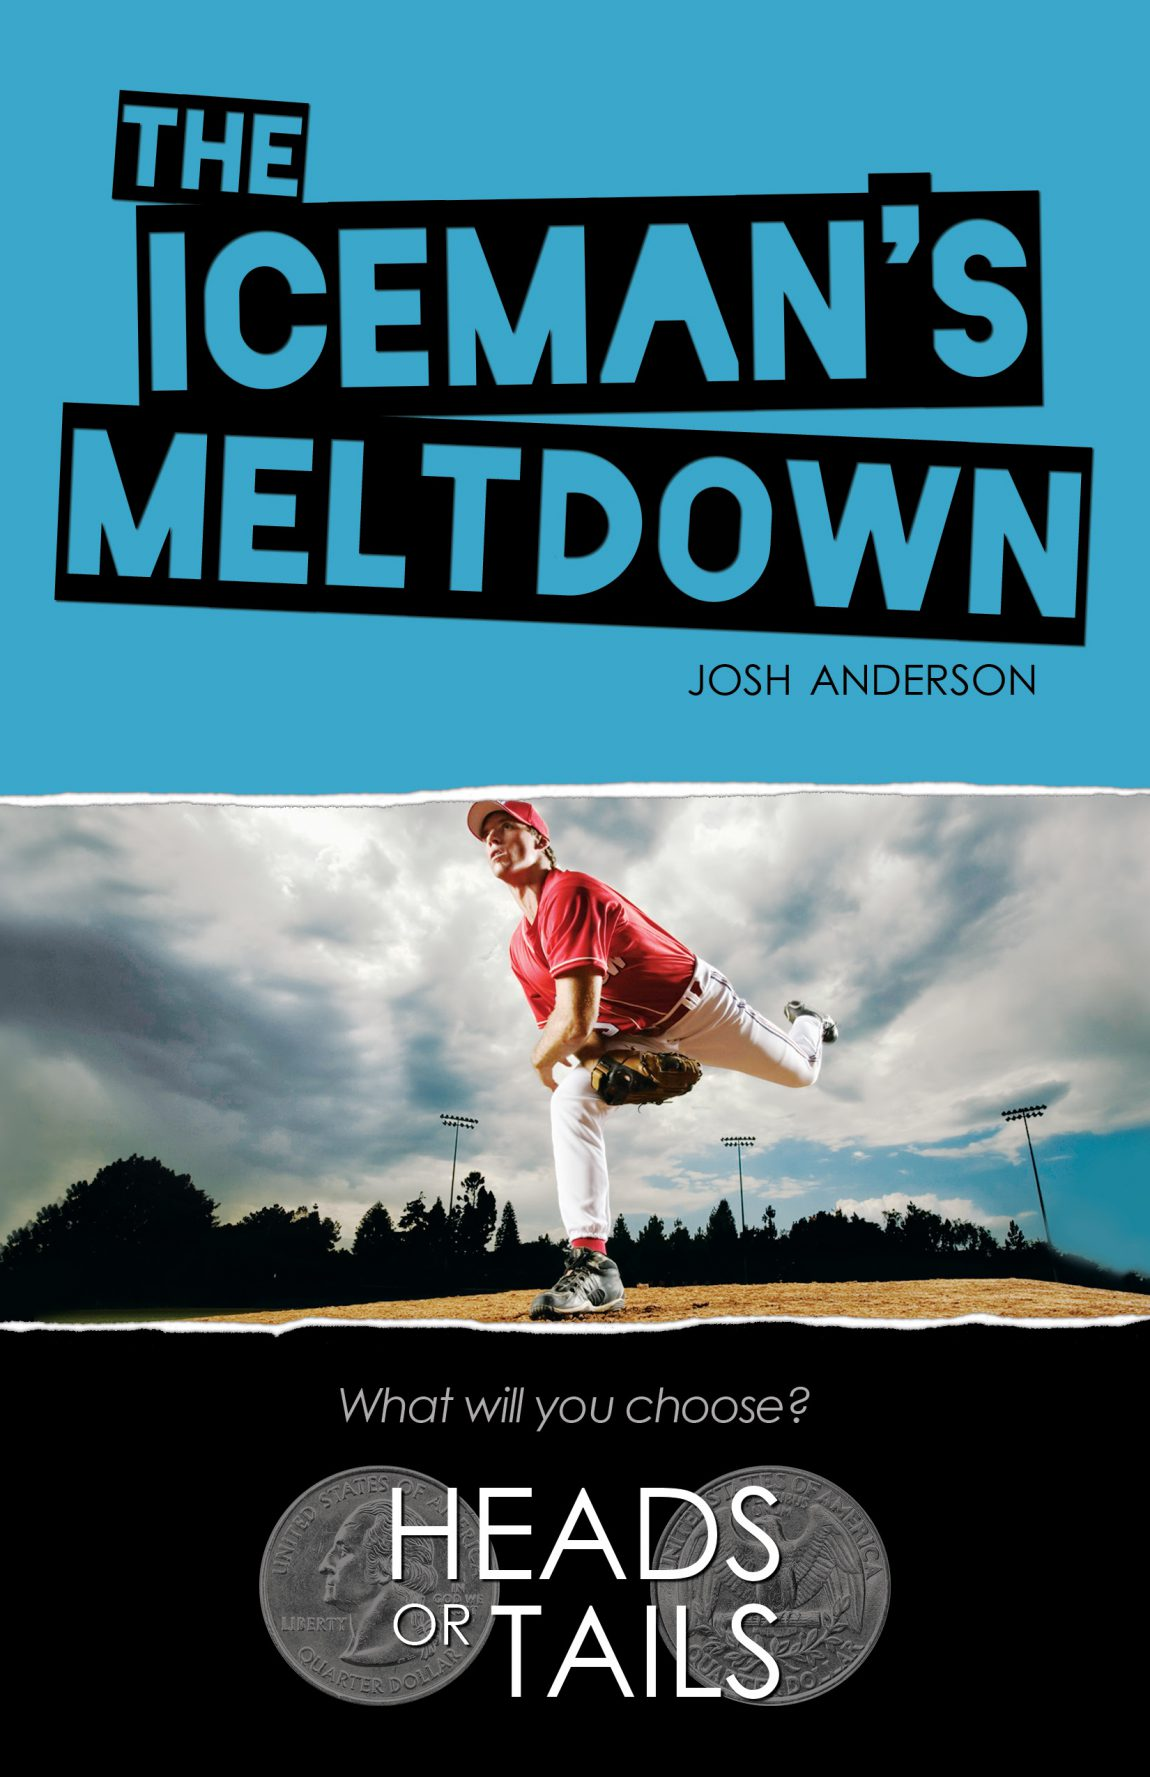 The-Icemans-Meltdown-1.jpg